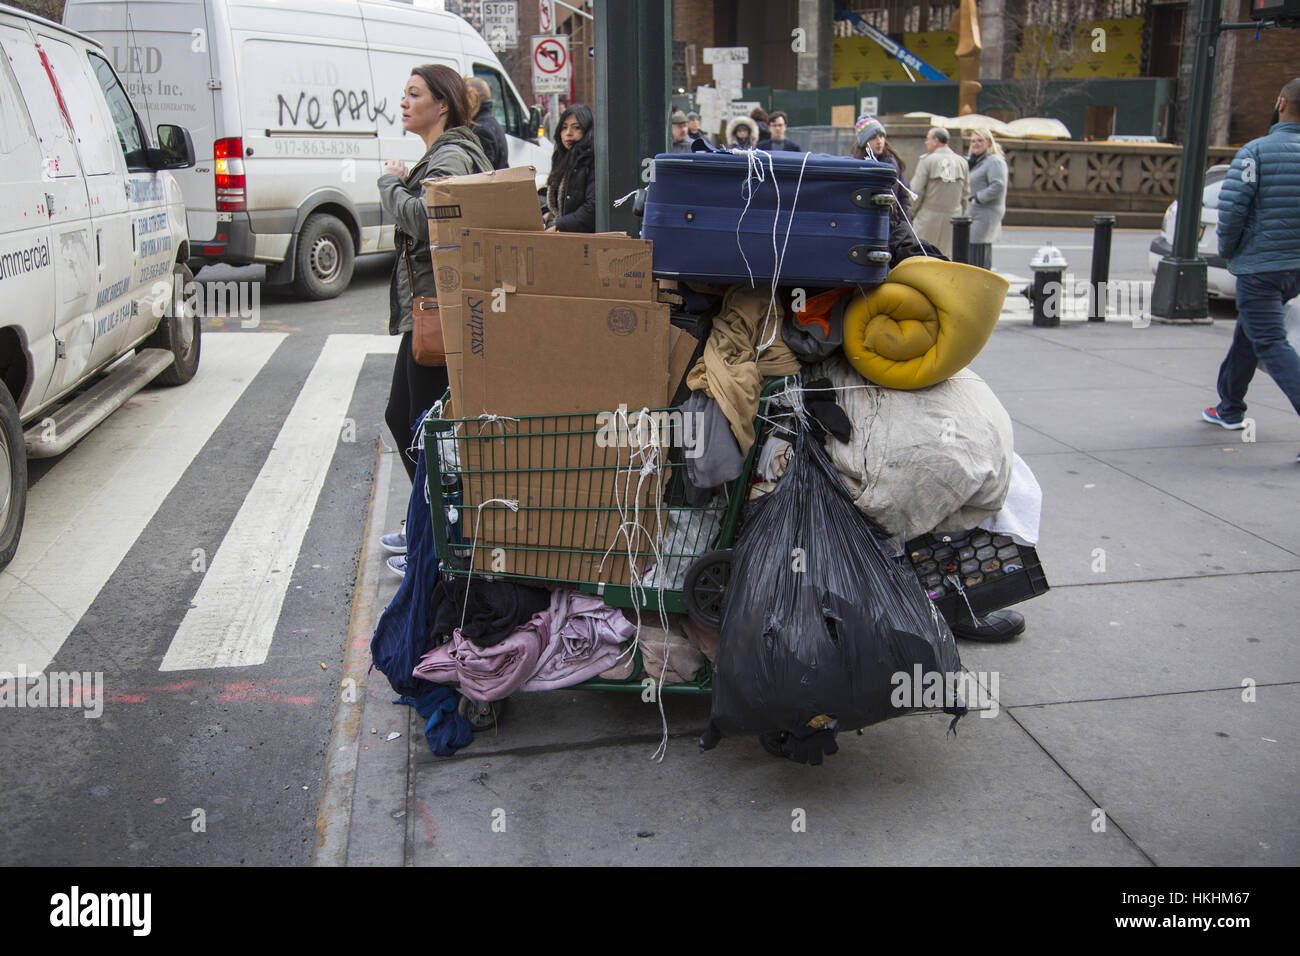 Possessions of a homeless man on 34th Street in Manhattan, NYC. Stock Photo